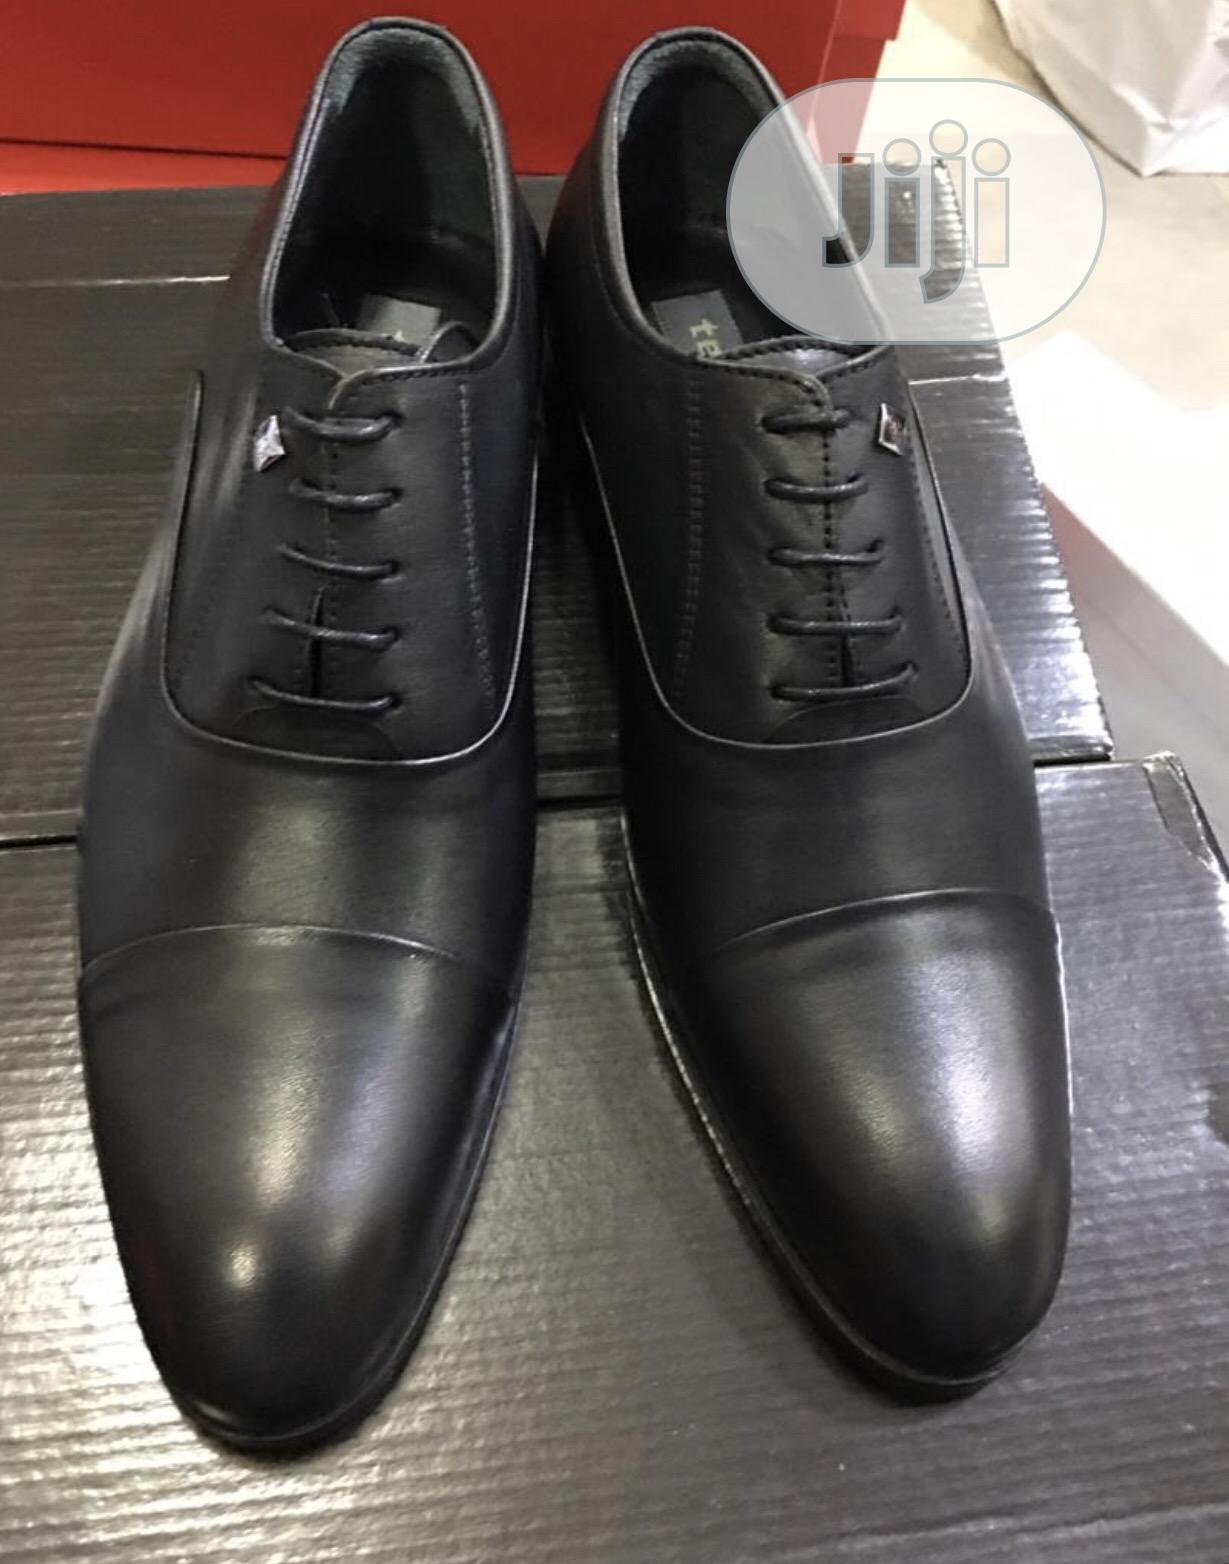 Tezcon Pure Italian Leather Oxford Lace Up Shoe for Men | Shoes for sale in Lekki, Lagos State, Nigeria